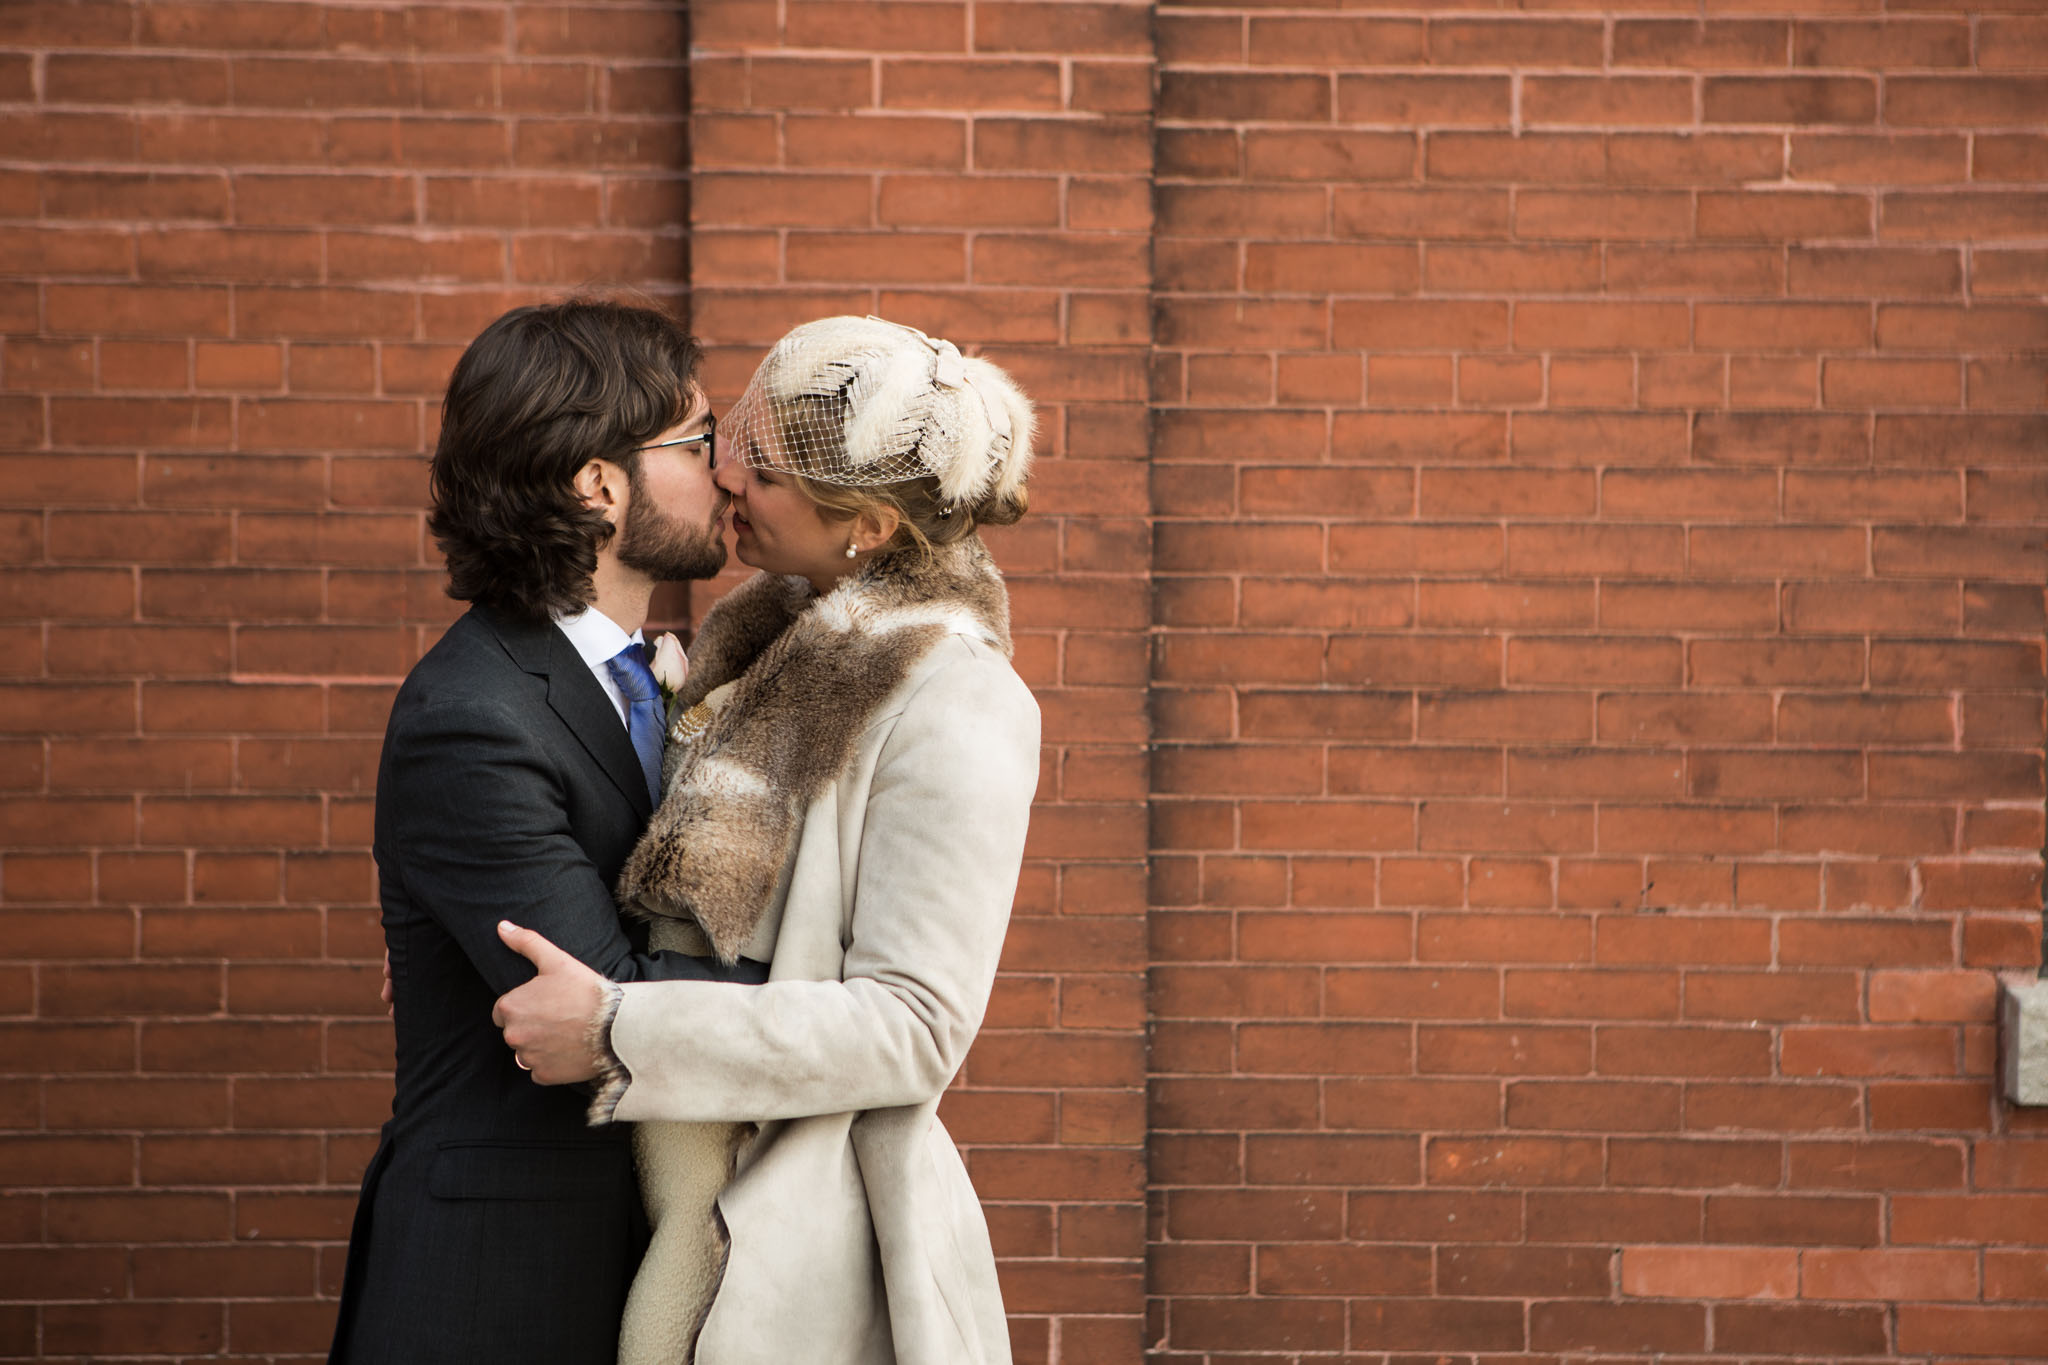 wedding portrait red brick wall background passionate kiss.jpg